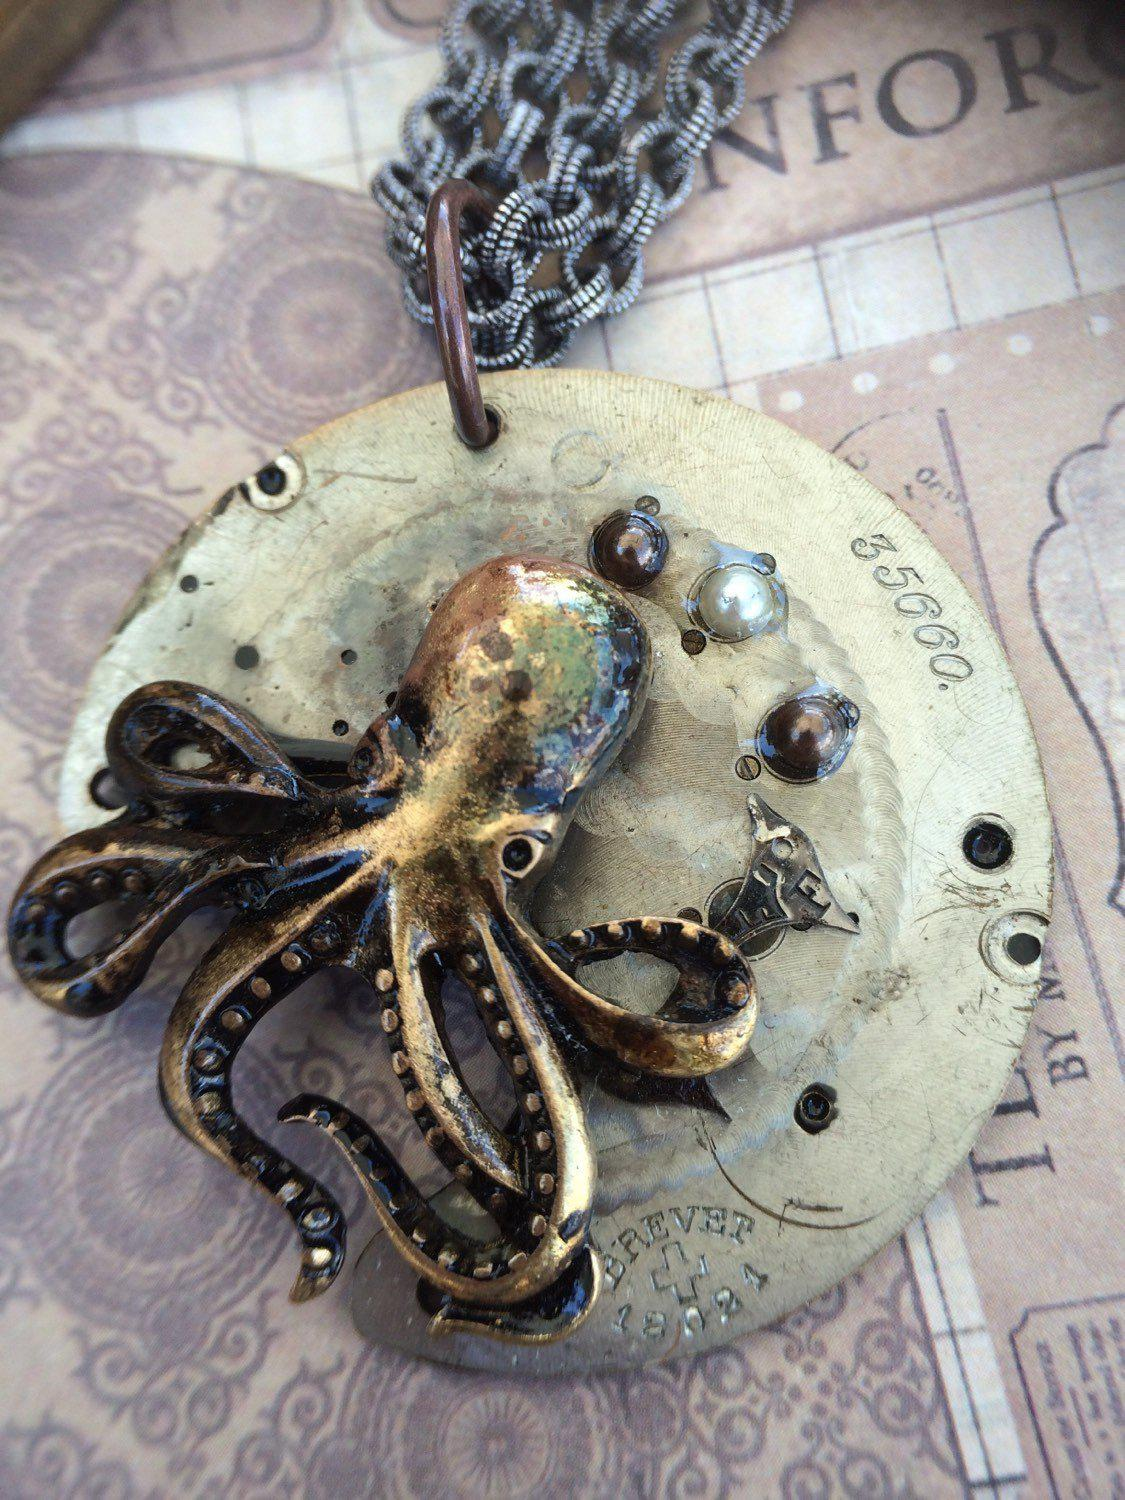 Octopus Steampunk Necklace with Pearls